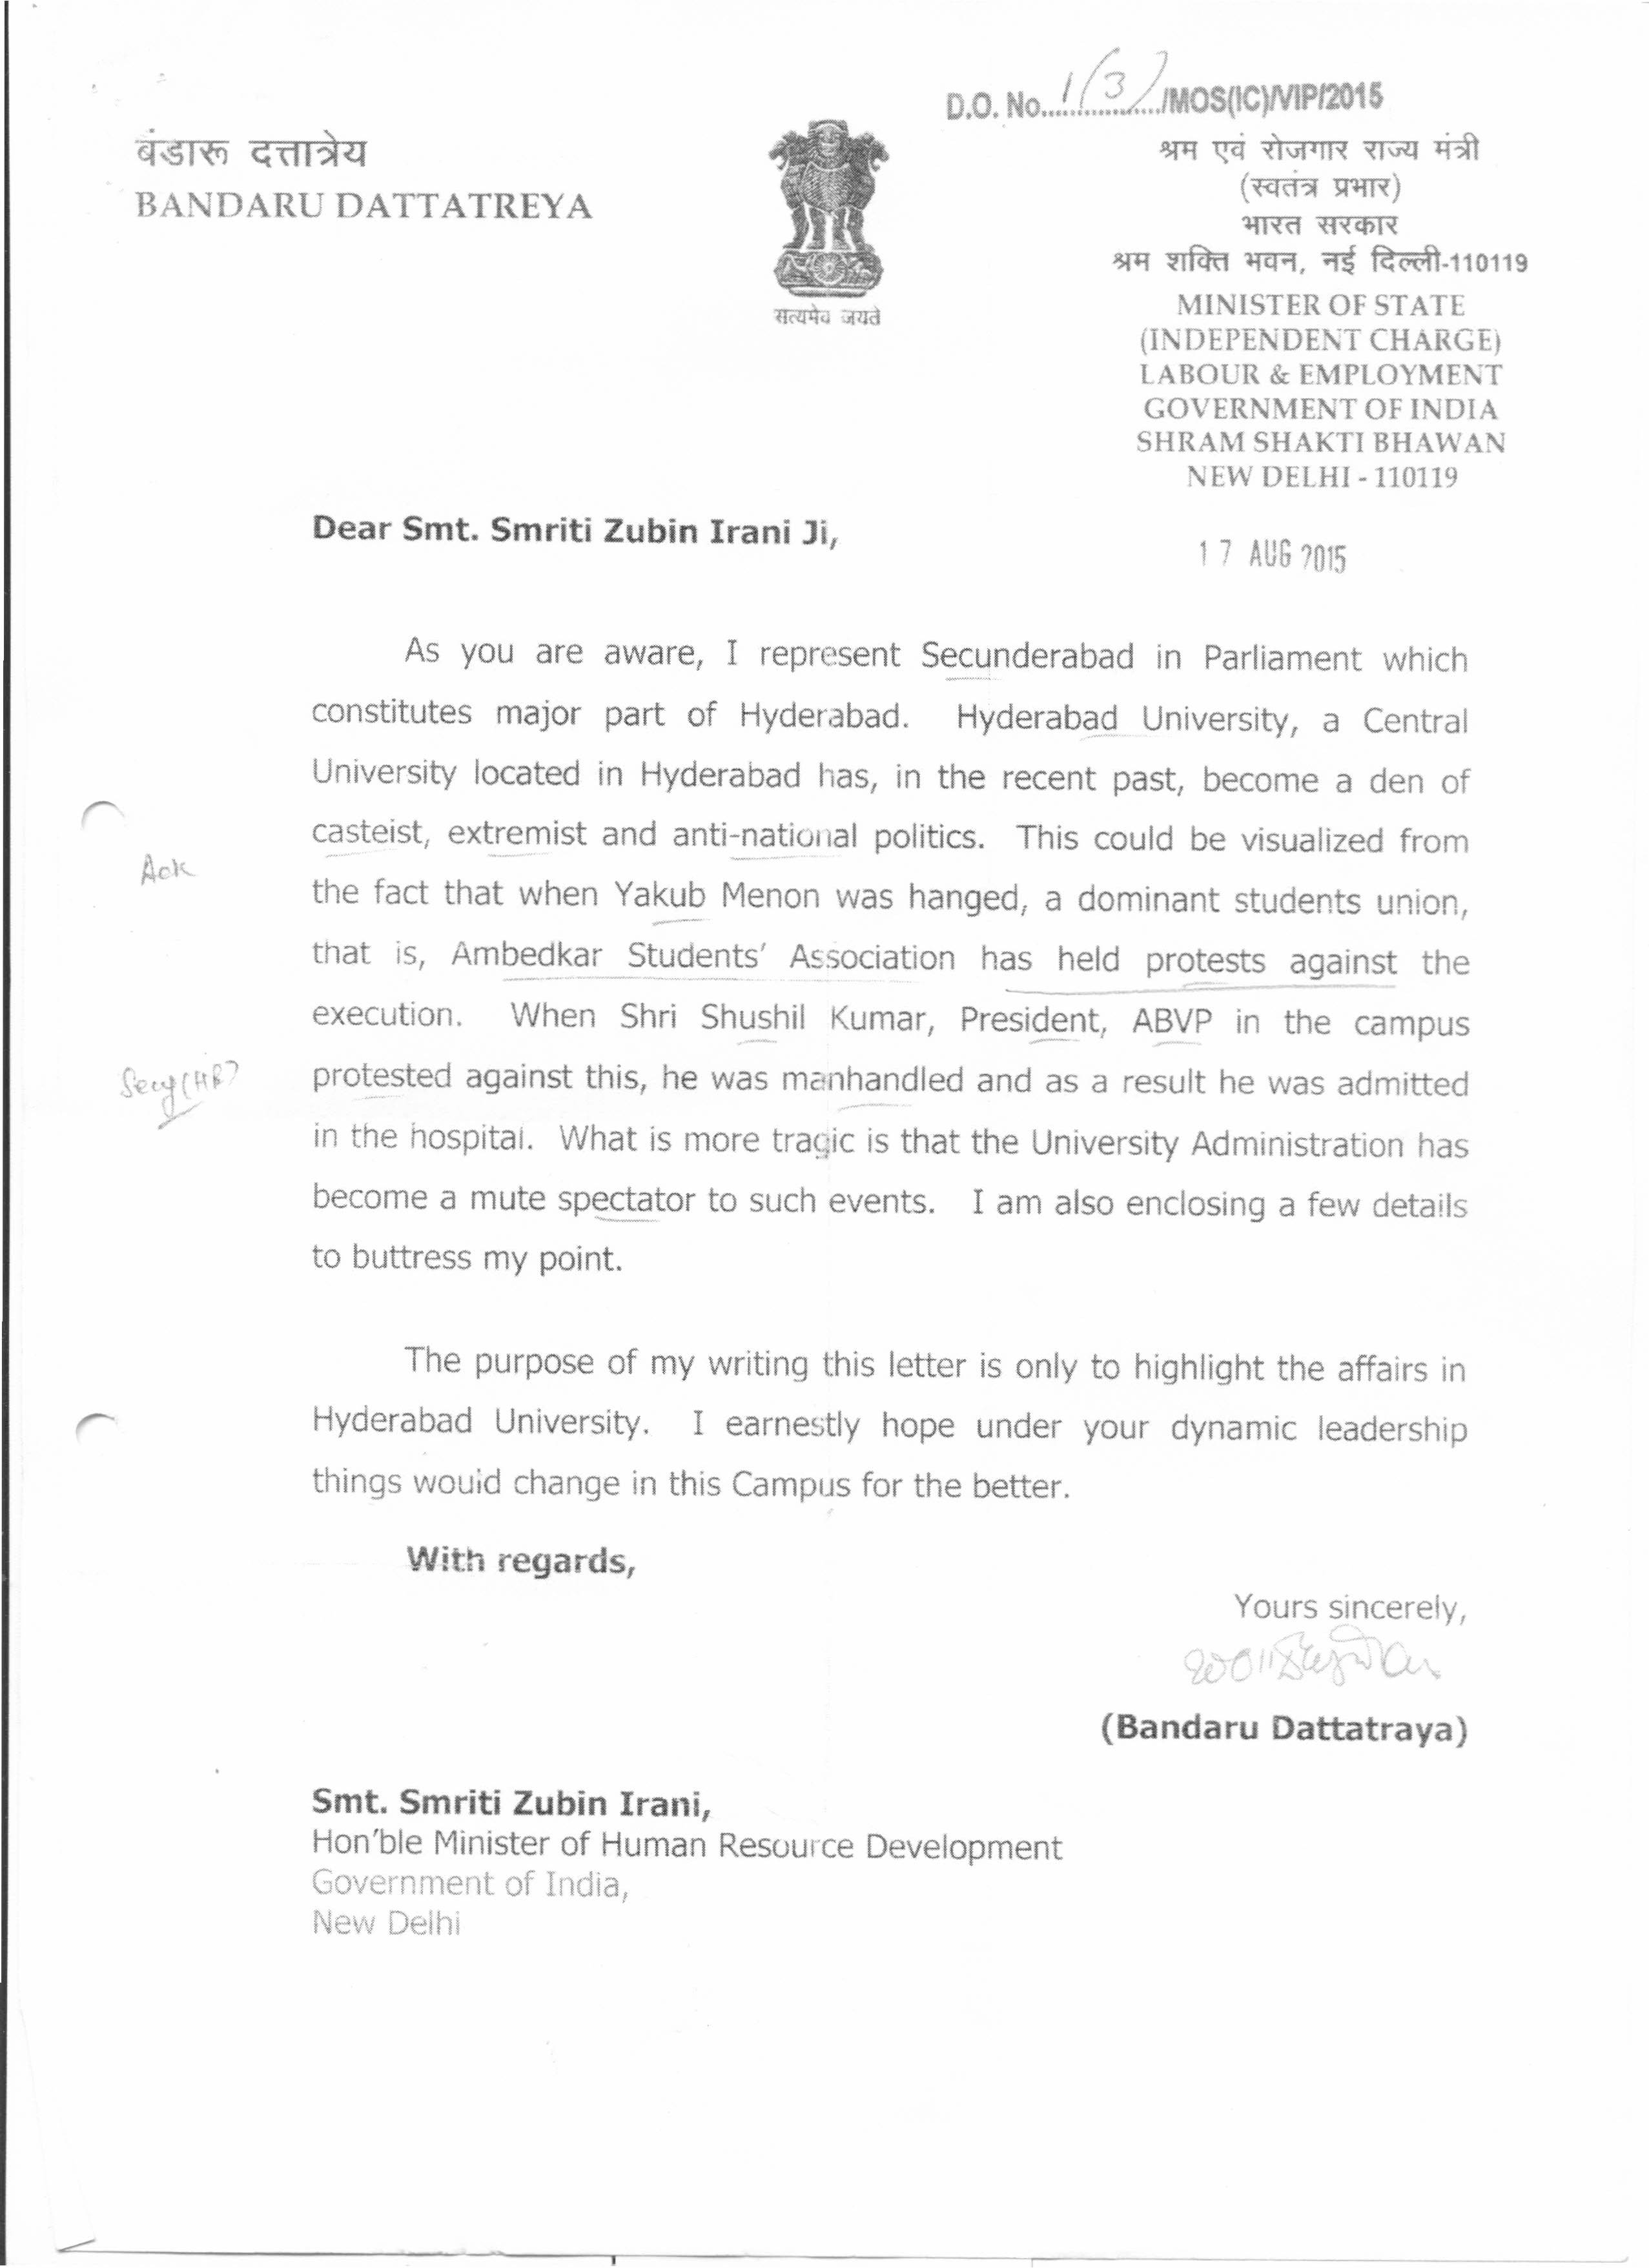 Letter from Union Minister for Employment to Minister of Human Resource Development